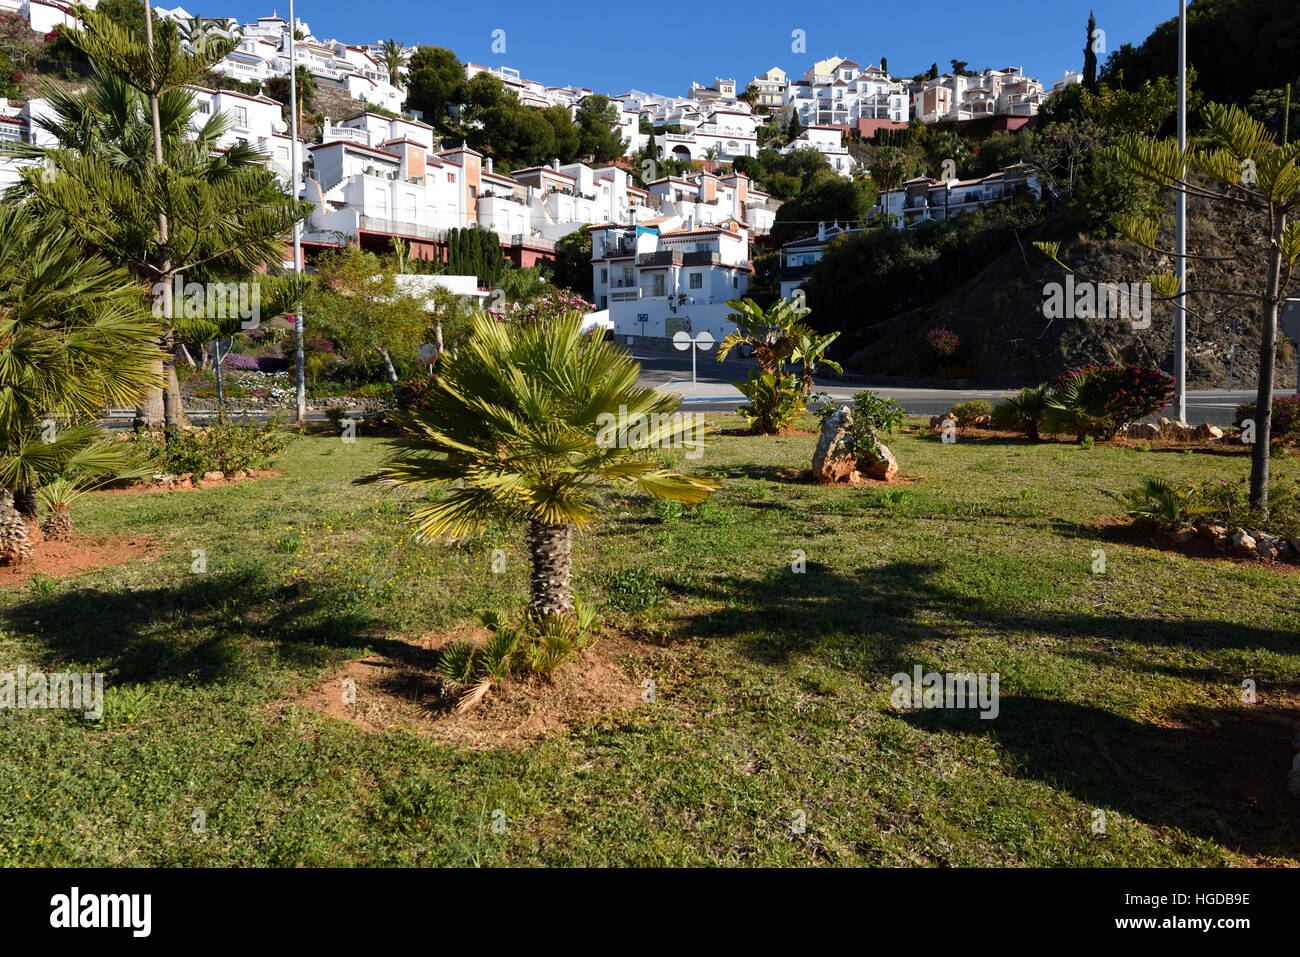 Holyday resort La Decas del Mar in Nerja - Stock Image